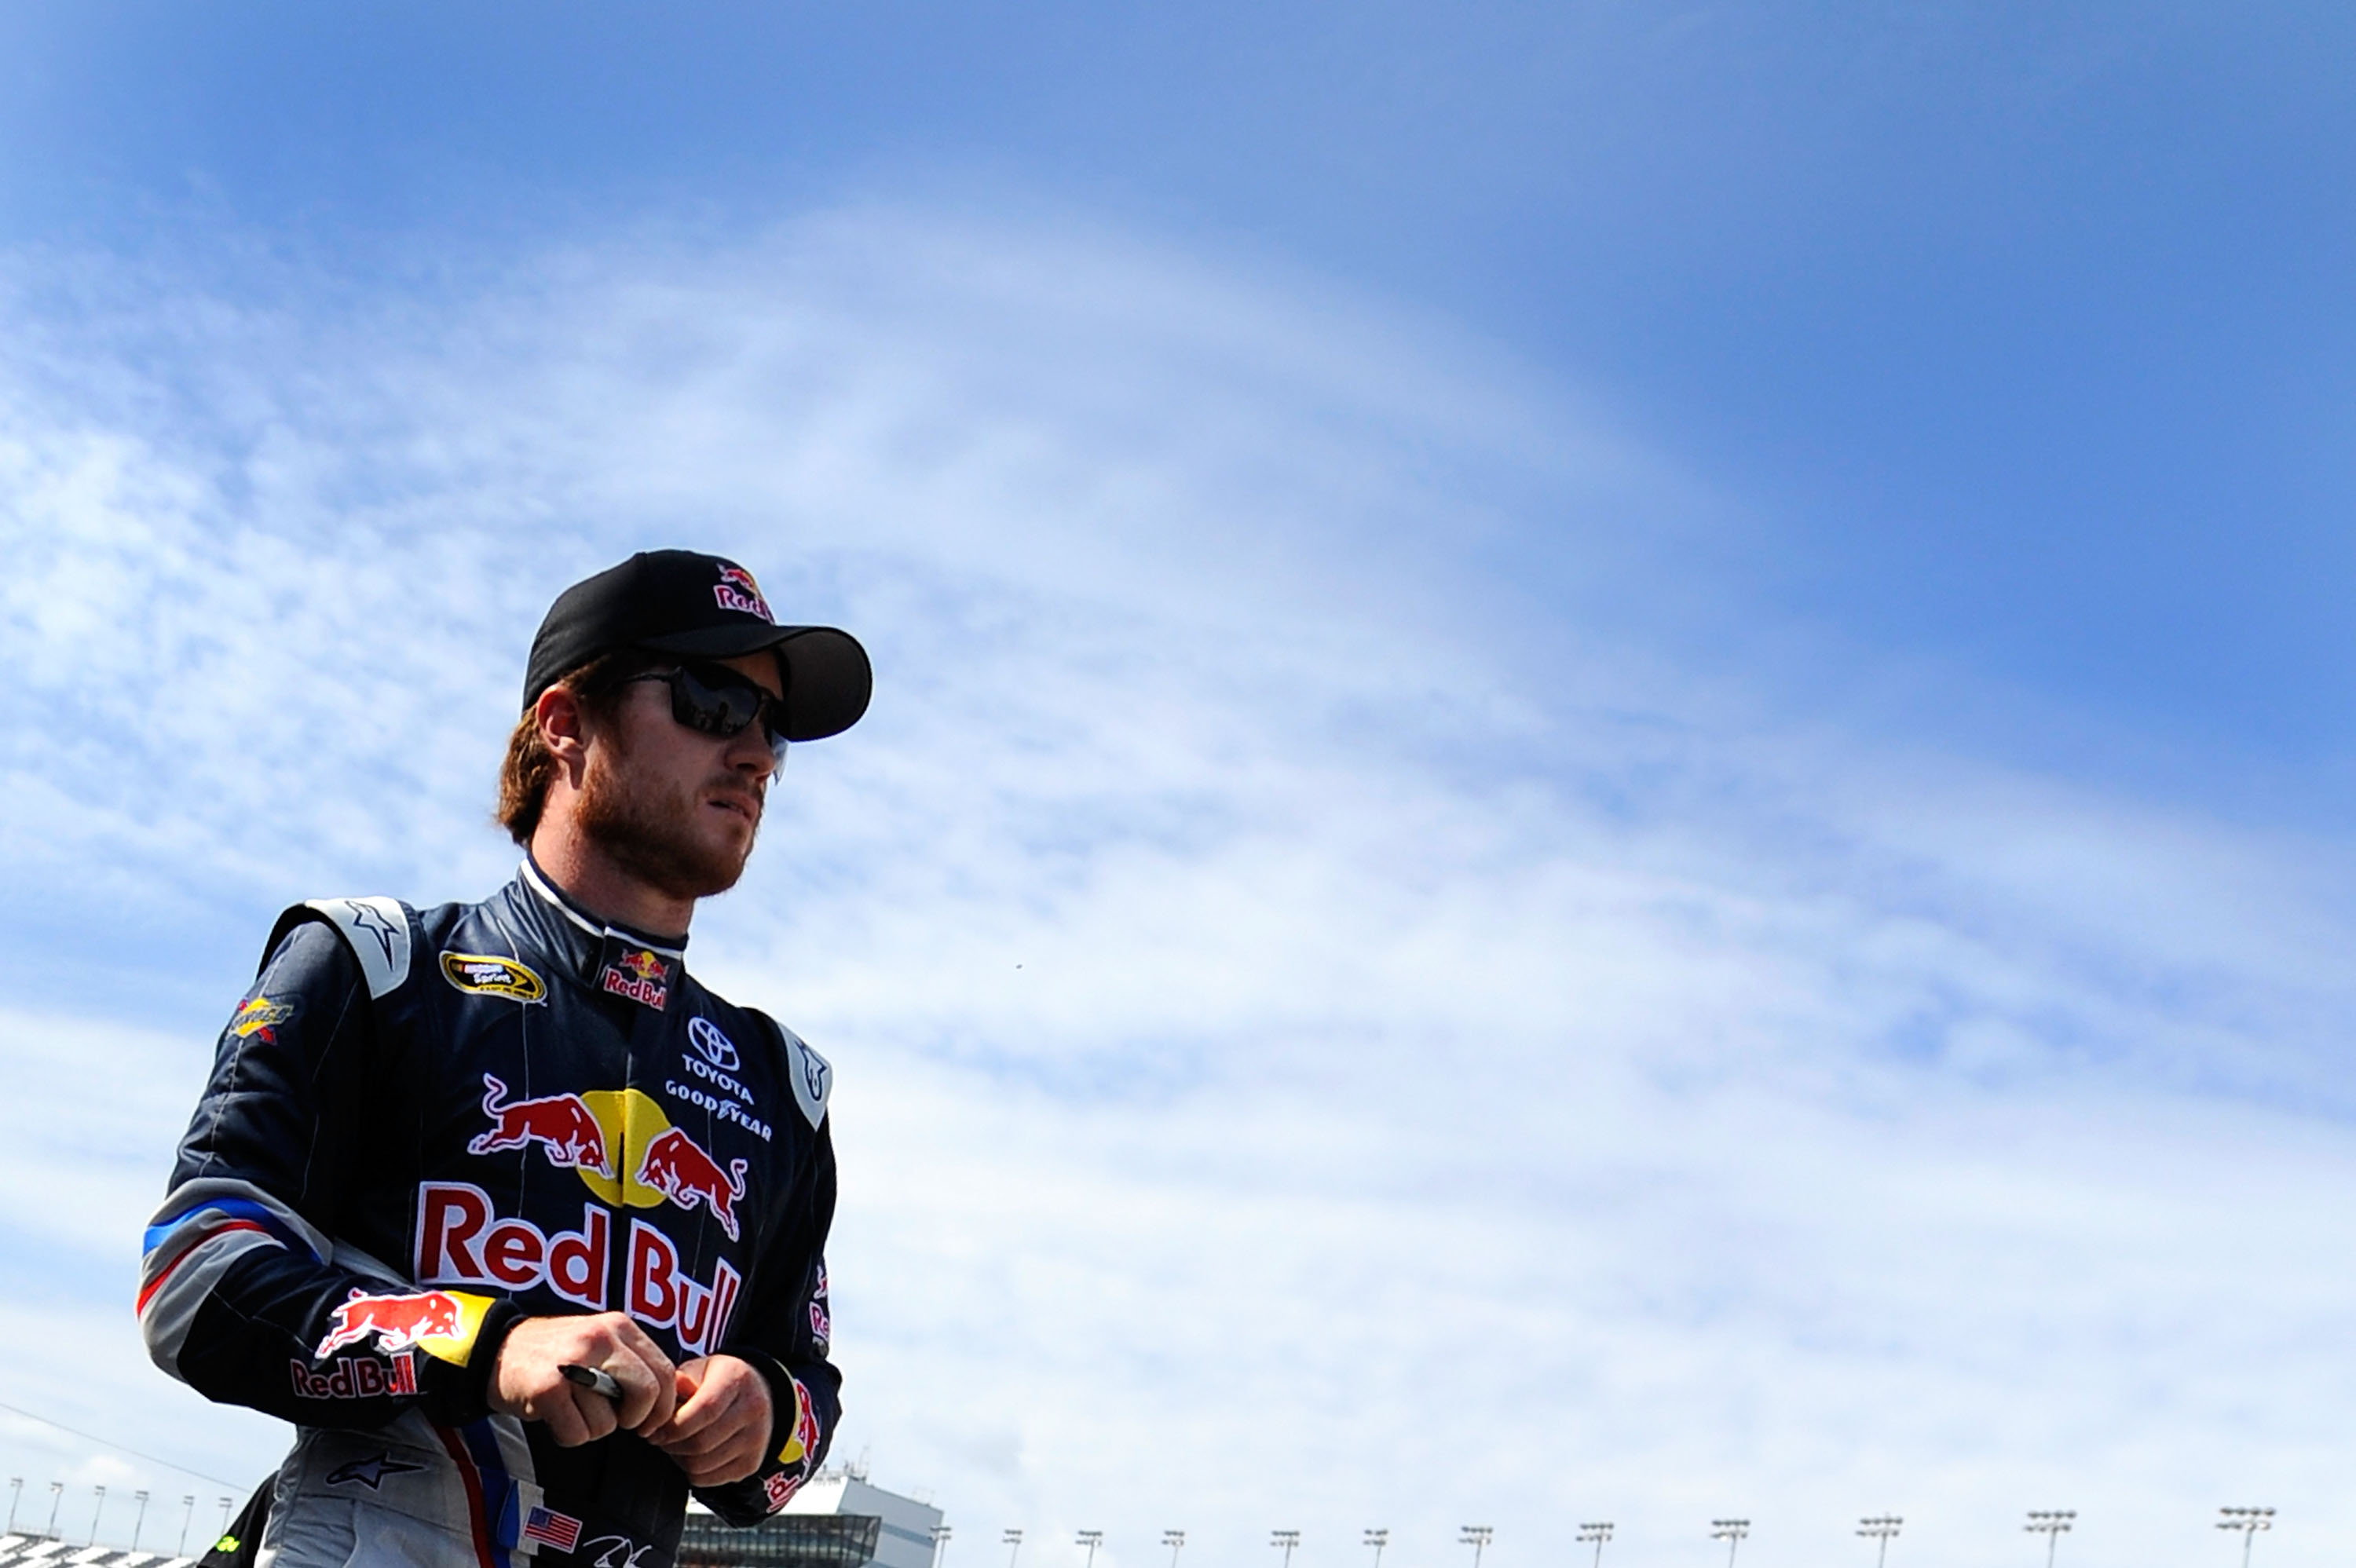 DAYTONA BEACH, FL - FEBRUARY 18:  Brian Vickers, driver of the #83 Red Bull Toyota, looks on in the garage during practice for the NASCAR Sprint Cup Series Daytona 500 at Daytona International Speedway on February 18, 2011 in Daytona Beach, Florida.  (Pho